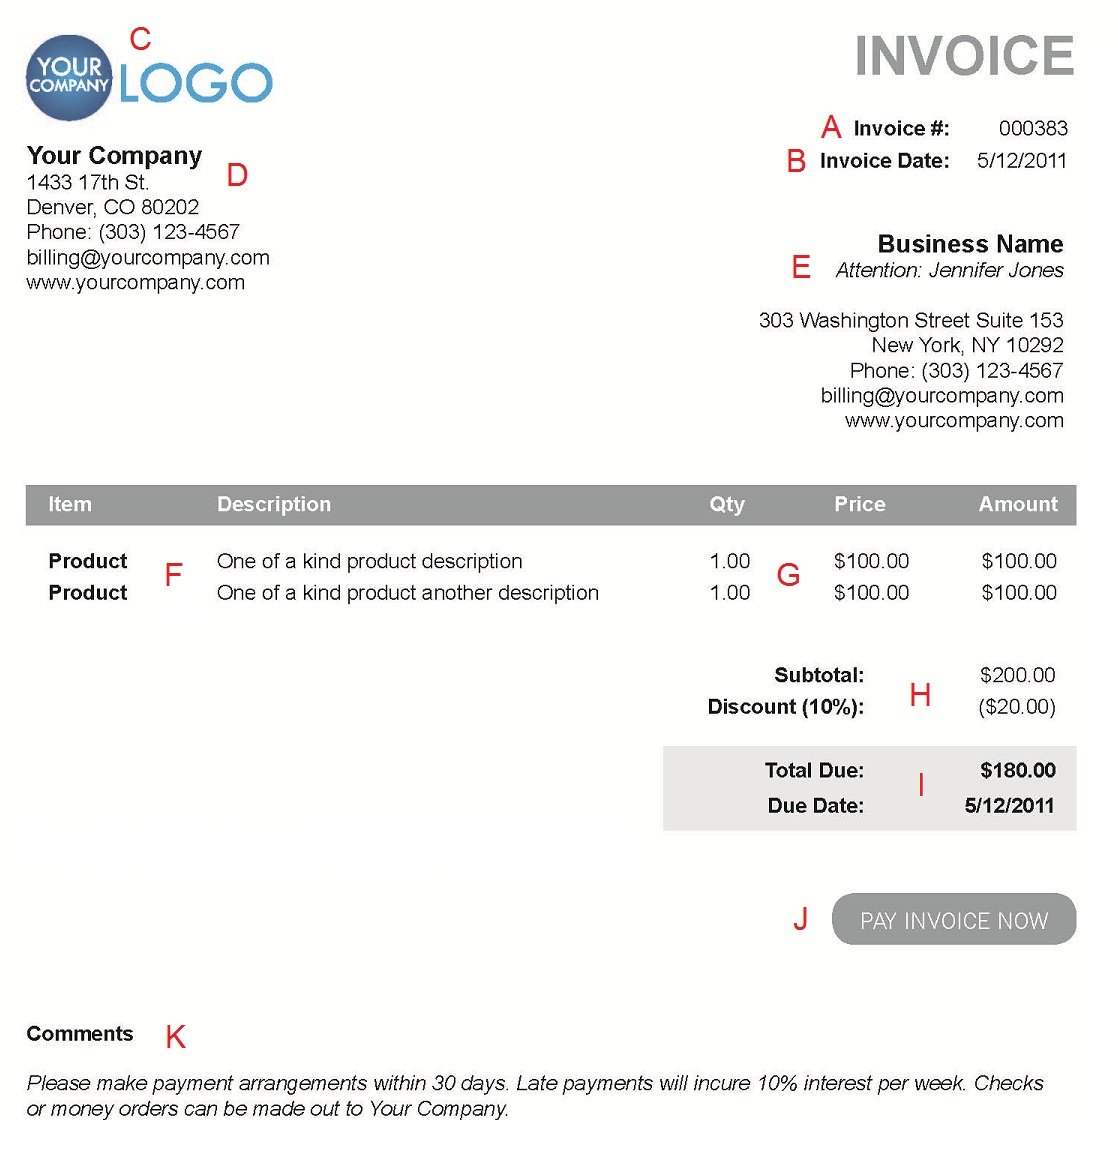 Centralasianshepherdus  Inspiring The  Different Sections Of An Electronic Payment Invoice With Gorgeous A  With Astounding Catering Invoice Example Also Invoice Terms Example In Addition Lps Invoice And Proforma Invoices As Well As Pest Control Invoice Additionally Custom Invoice Book From Paysimplecom With Centralasianshepherdus  Gorgeous The  Different Sections Of An Electronic Payment Invoice With Astounding A  And Inspiring Catering Invoice Example Also Invoice Terms Example In Addition Lps Invoice From Paysimplecom